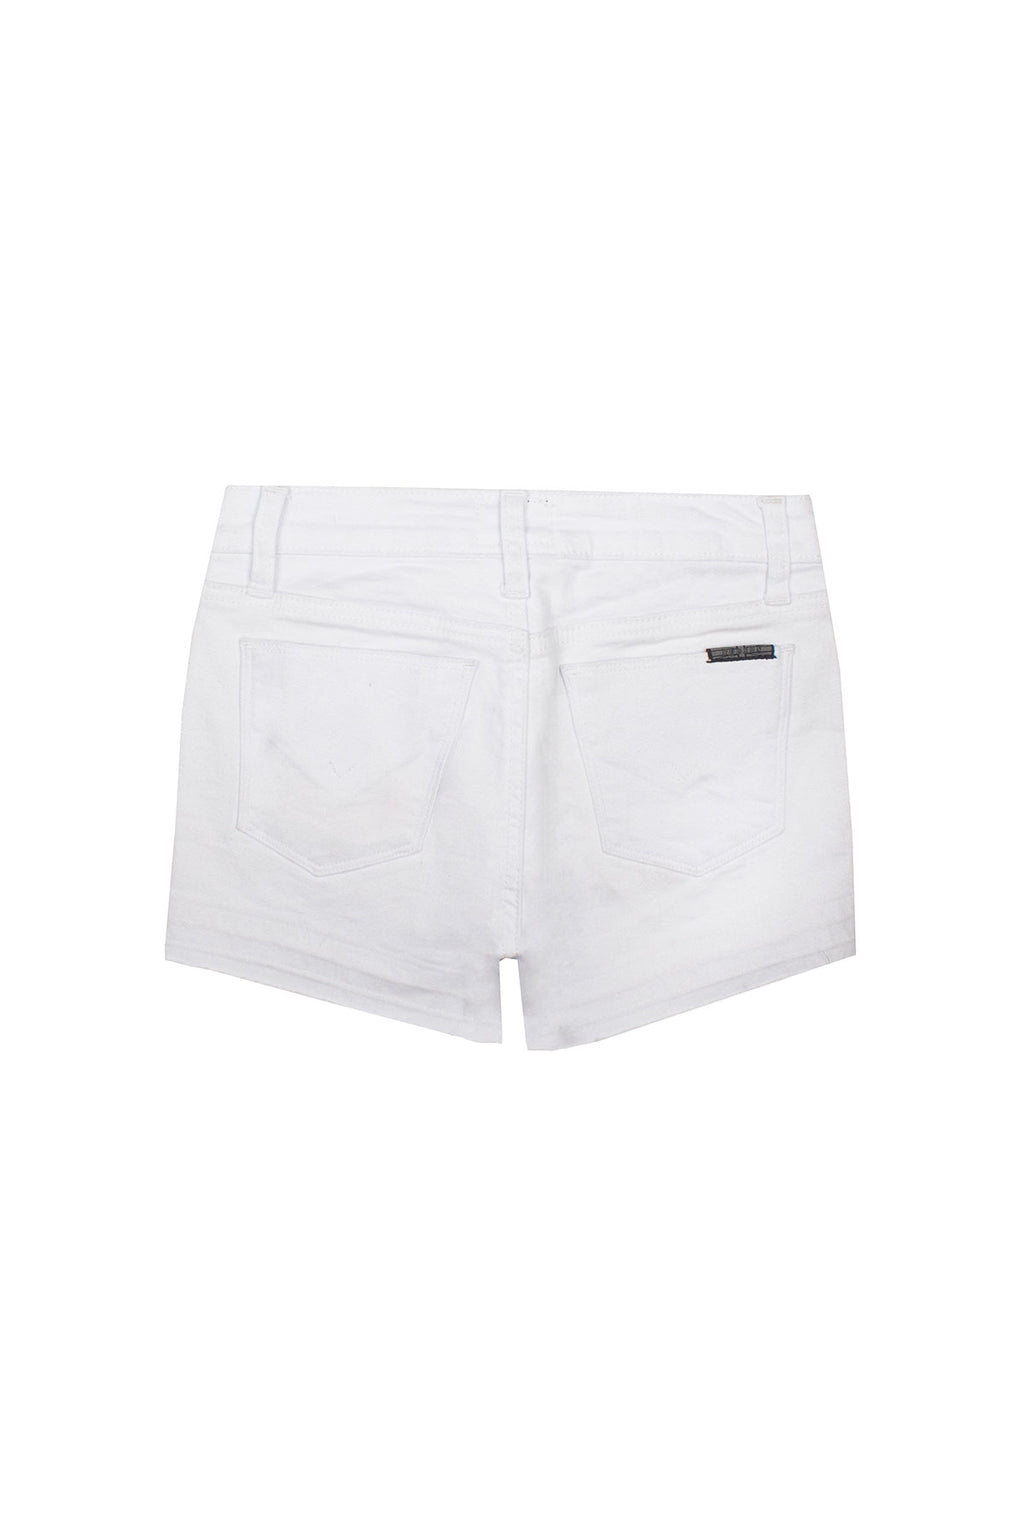 GIRLS AVA SHORT, SIZES 7-16 - WHITE - Image 2